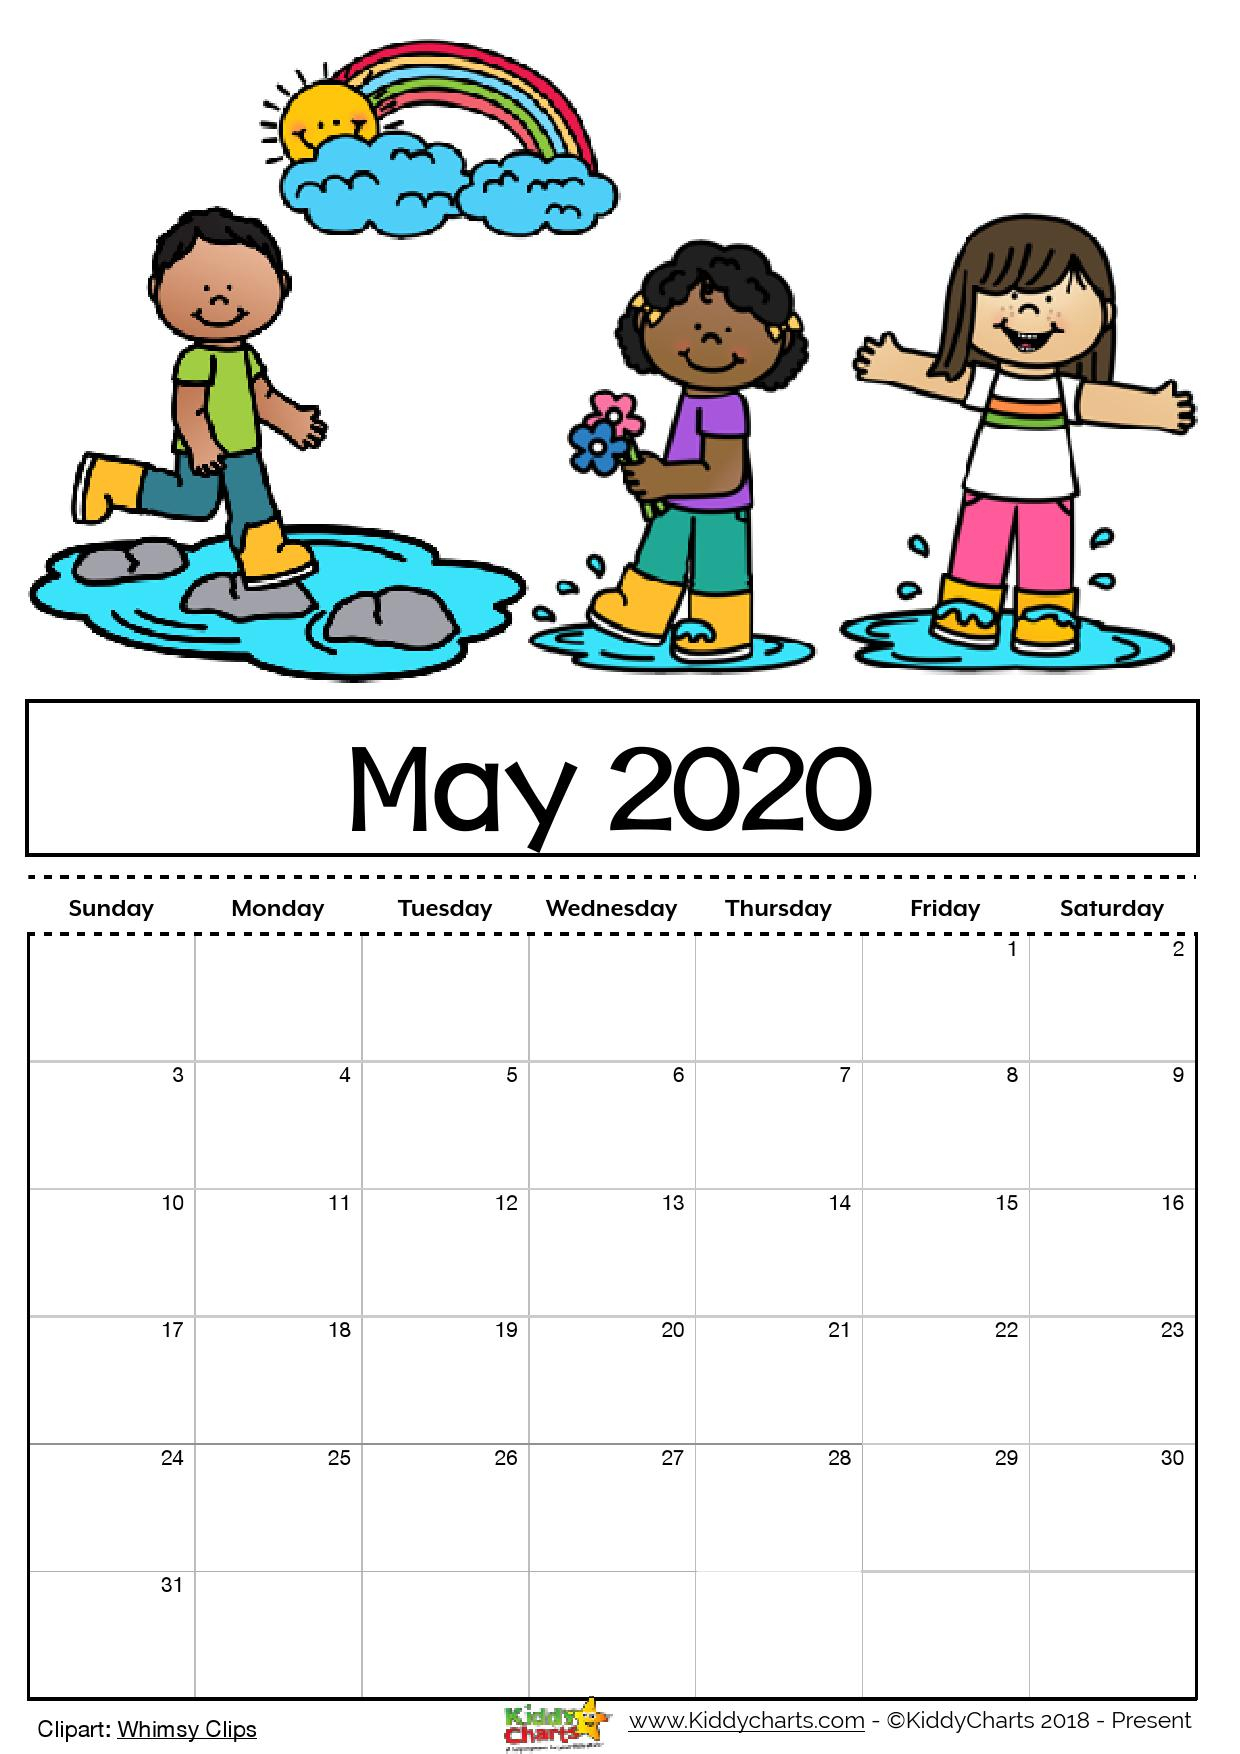 Free Printable 2020 Calendar For Kids, Including An Editable Version within 2020 Free Printable Coloring Calendar